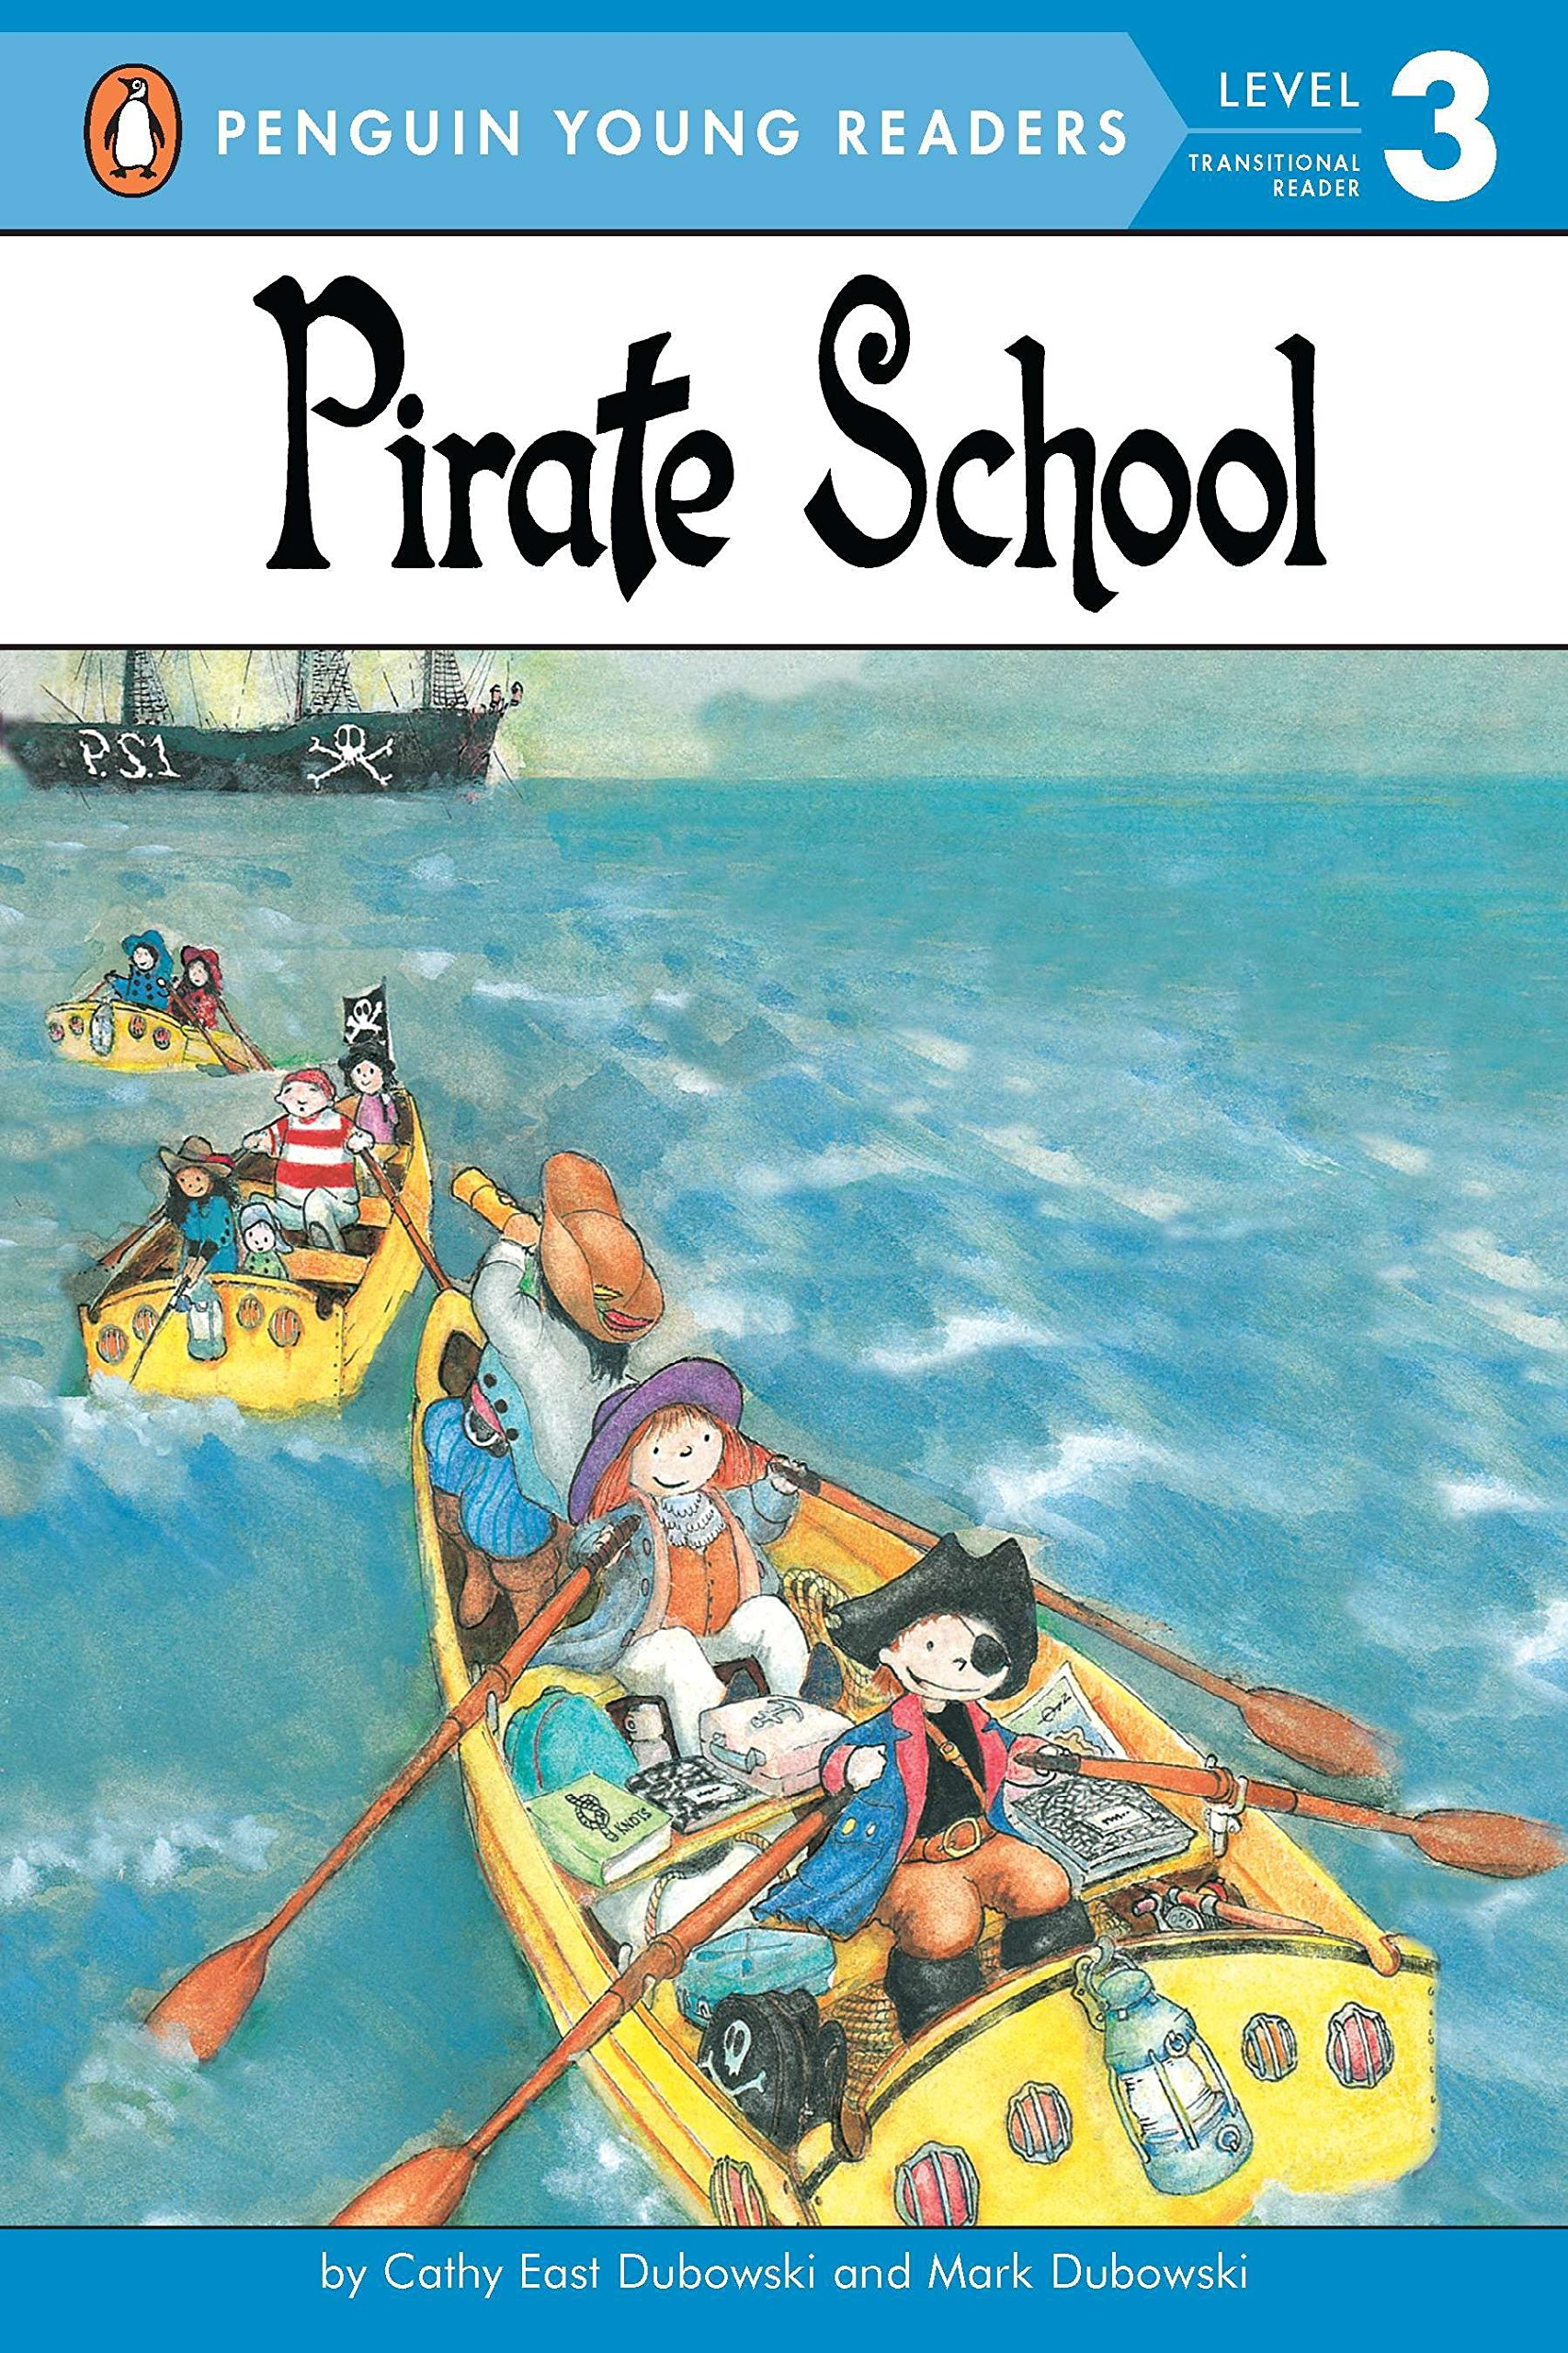 Pirate School (Penguin Young Readers: Level 3): Amazon.co.uk: Cathy East  Dubowski: 9780448411323: Books